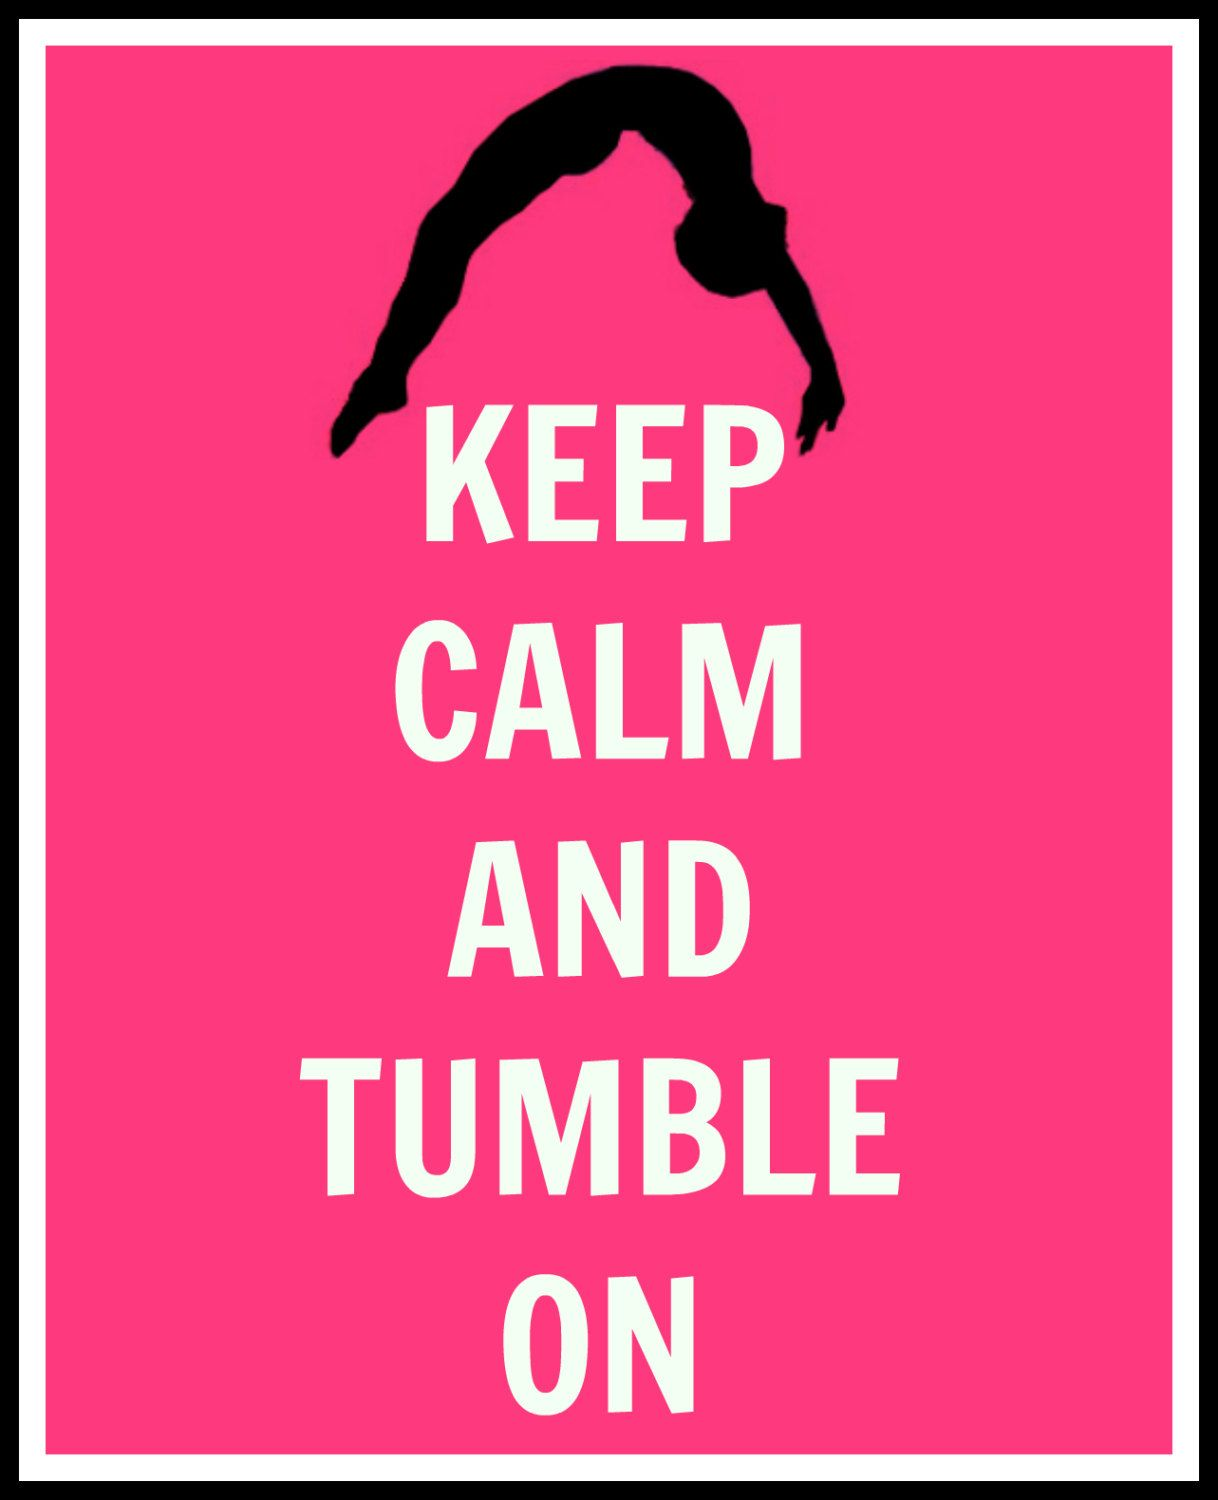 Uncategorized Gymnastics Pictures To Print keep calm and tumble on gymnastics digital print 5 99 via etsy etsy